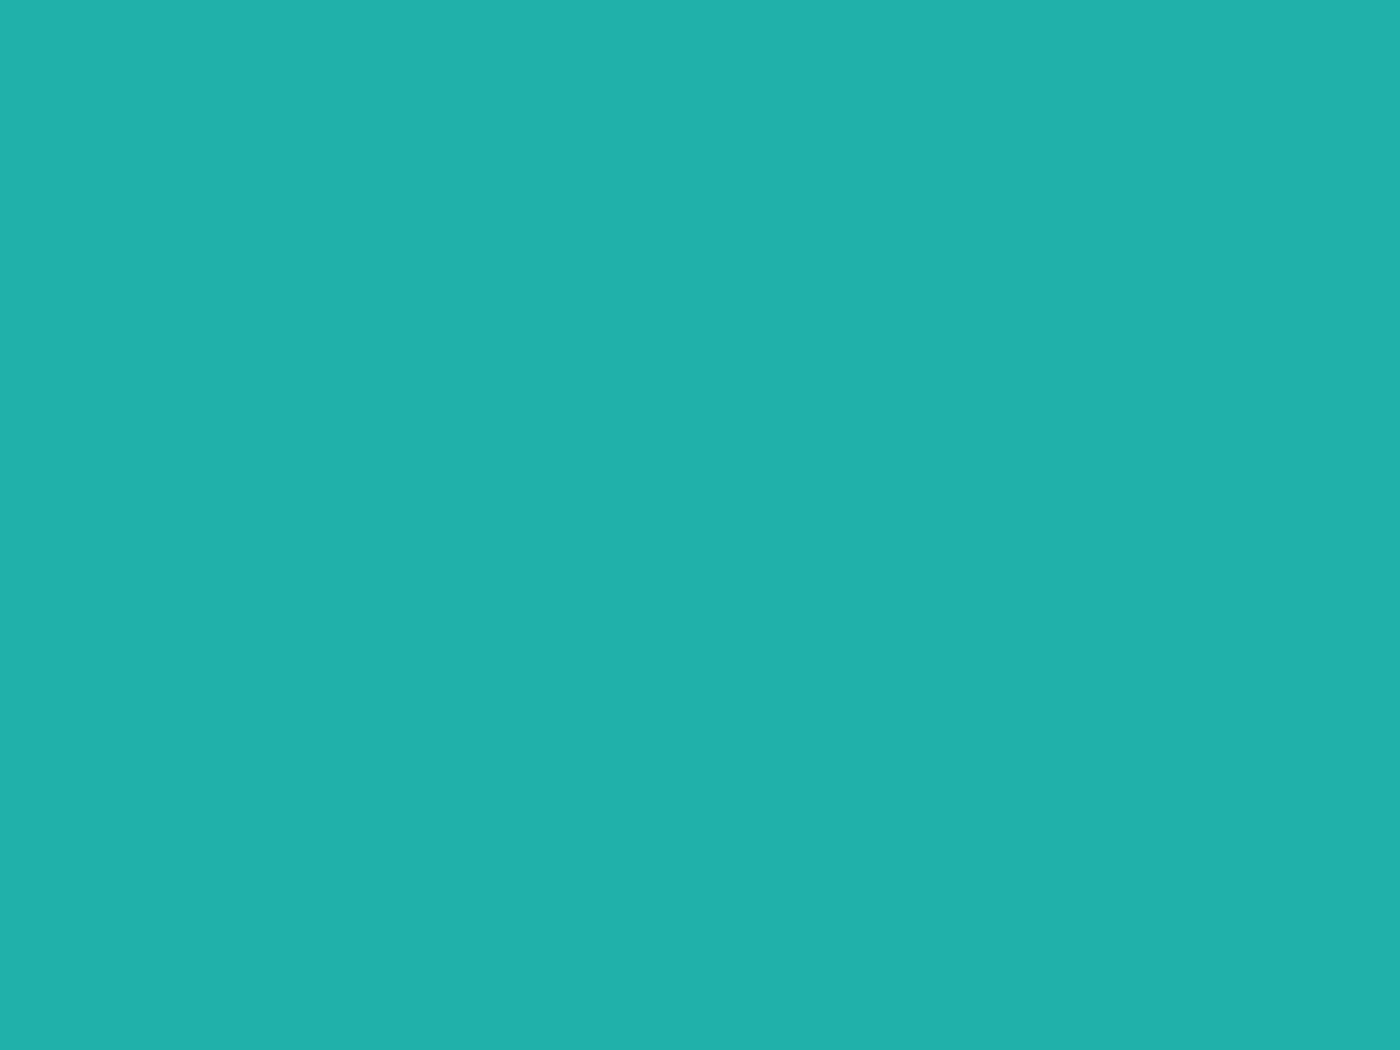 1400x1050 Light Sea Green Solid Color Background